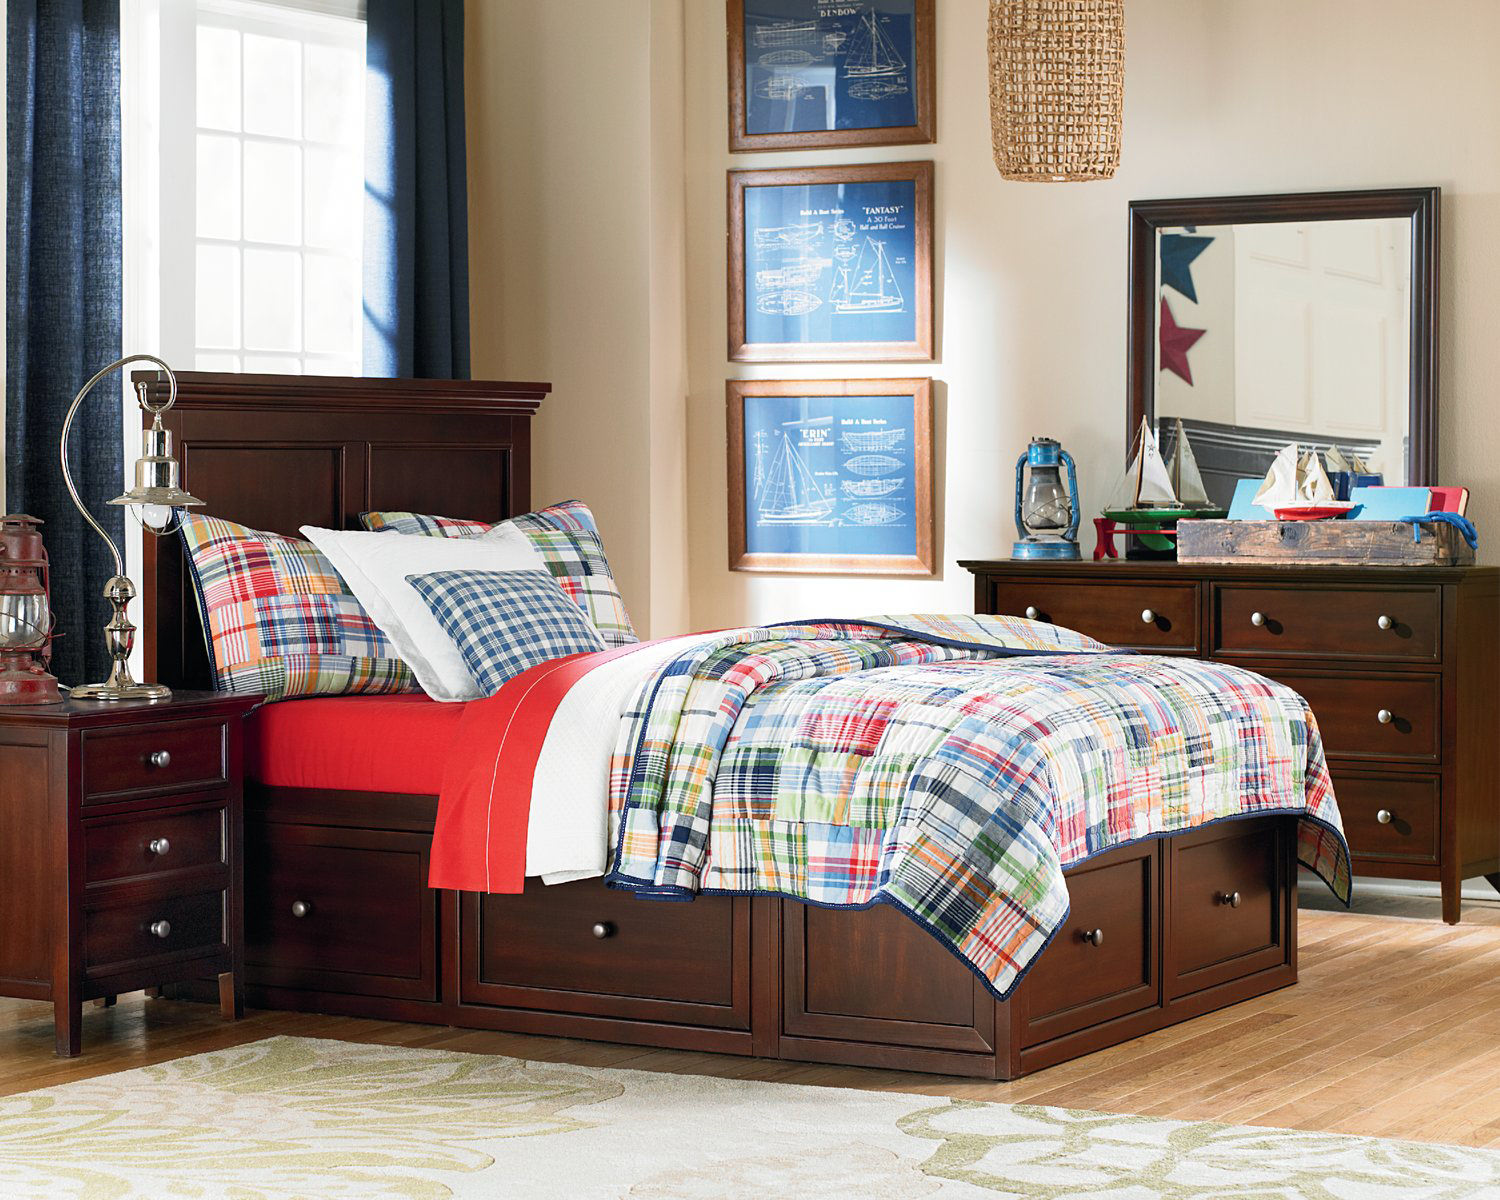 Spencer Six Drawer Storage Bed Bedroom Suite By Thomas Cole Hom Furniture